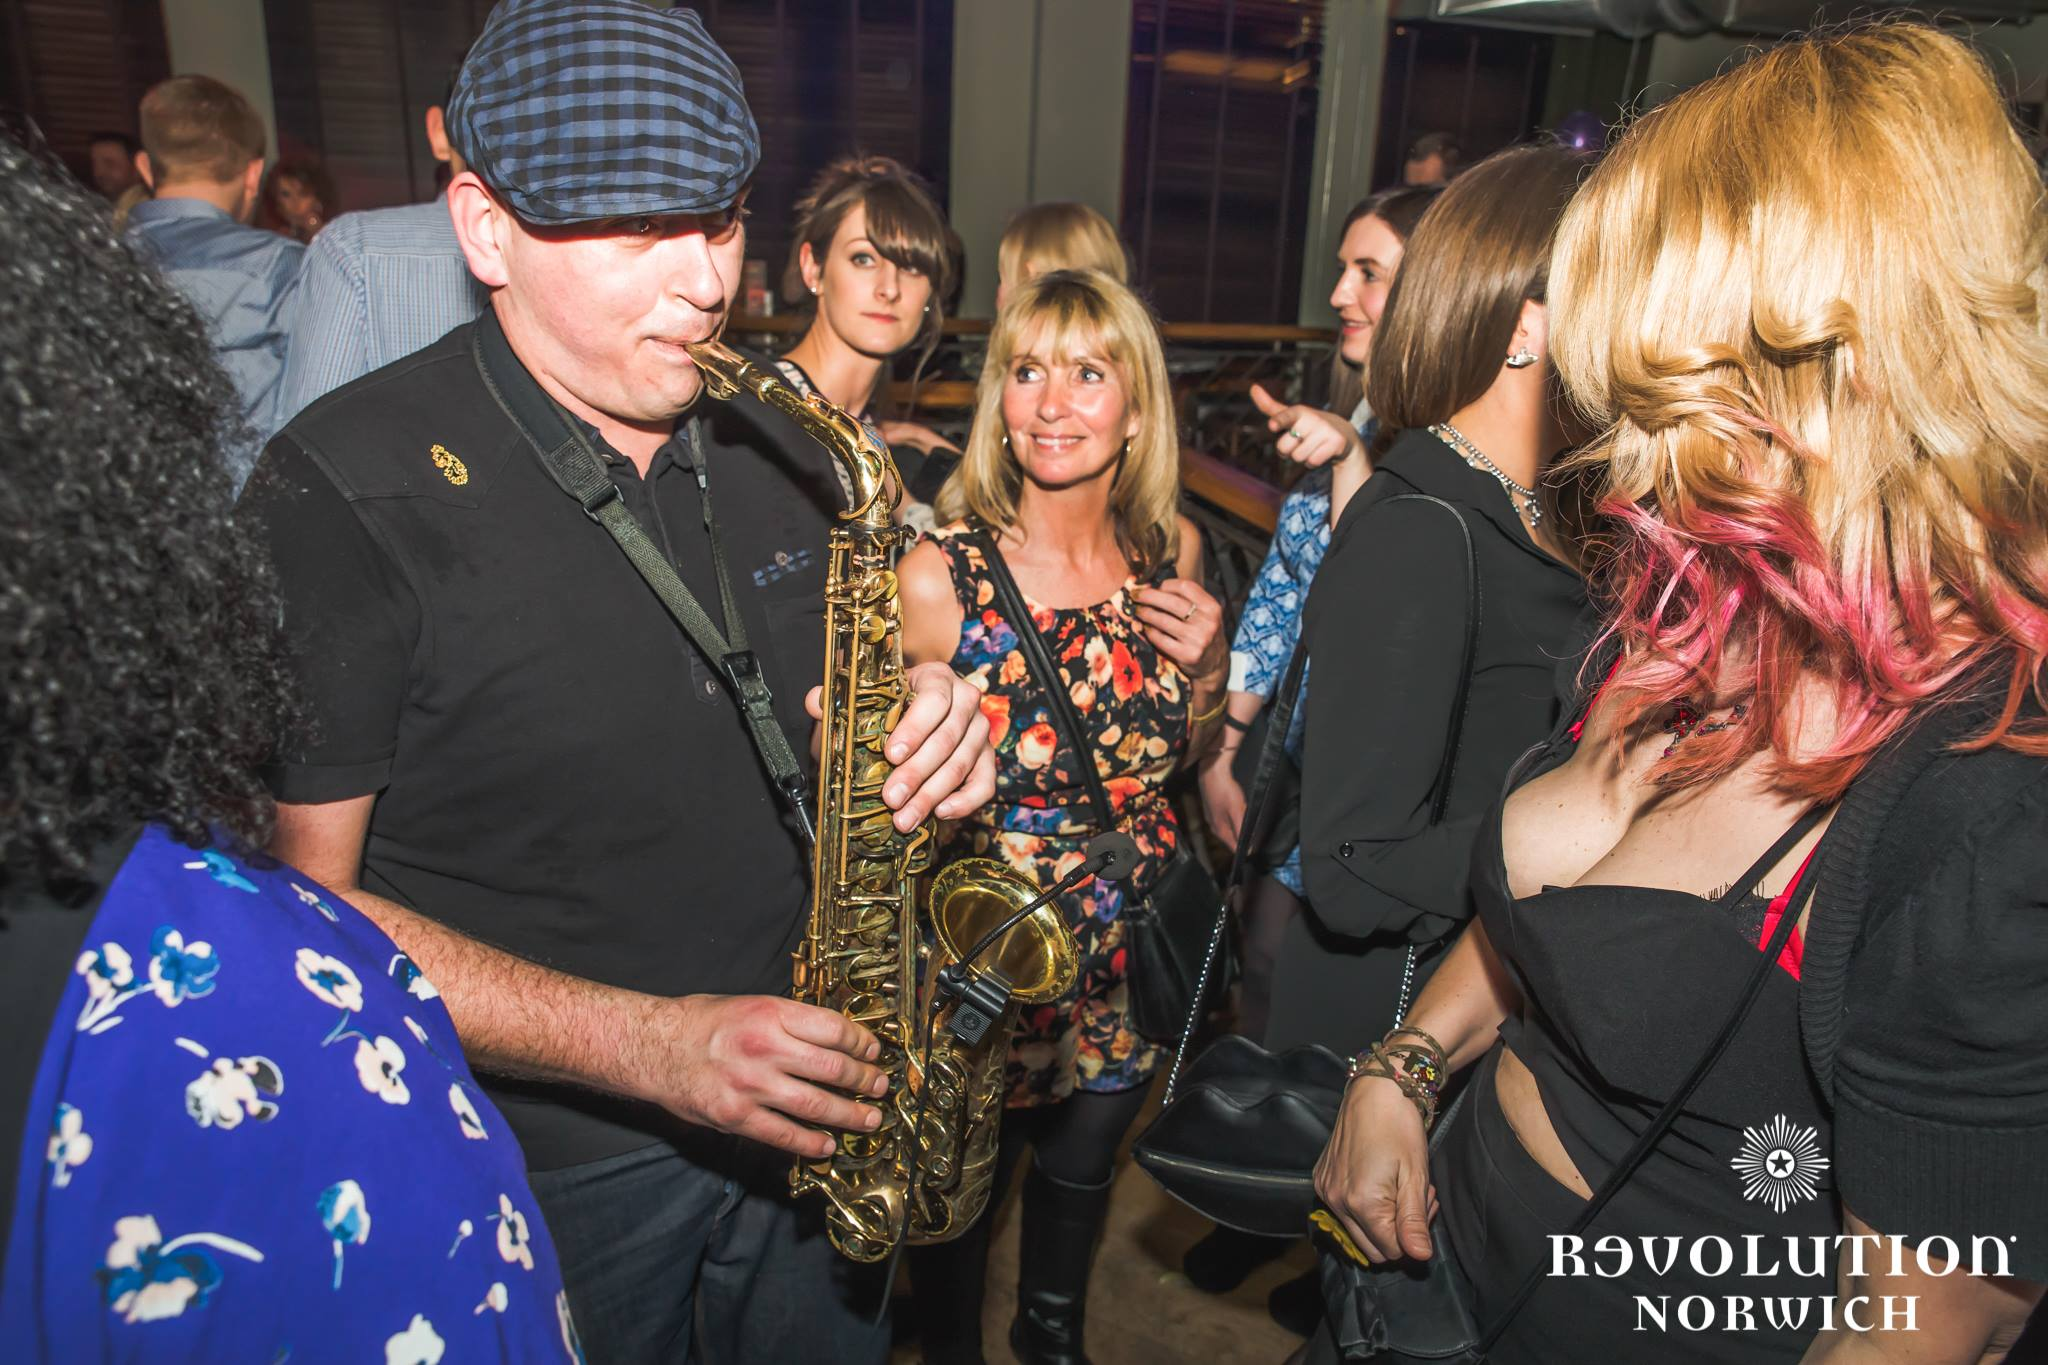 Revolution Norwich Andy Sax Saxophone House Music Club Classics Night Club Entertainer Saxophonist